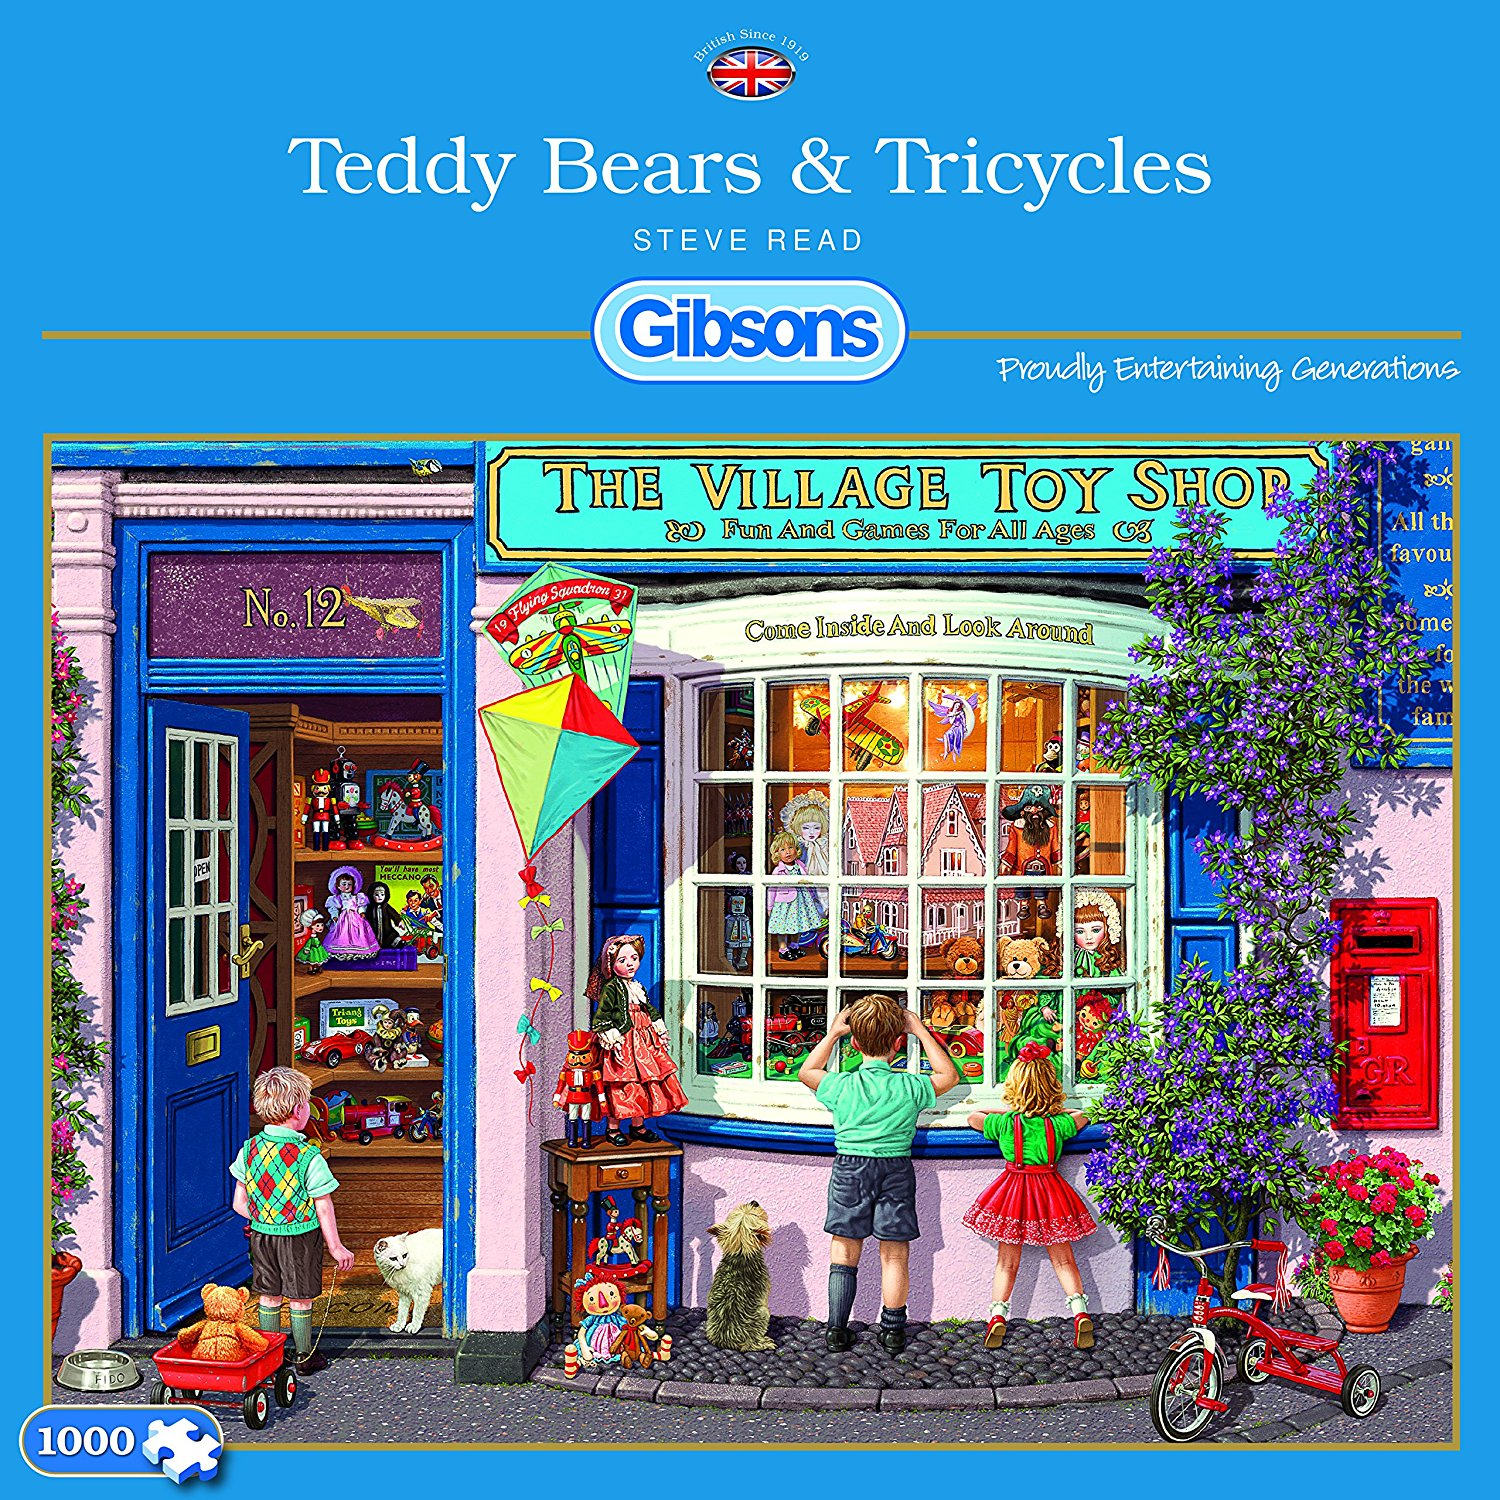 Teddy Bears And Tricycles, 1000pc puzzle